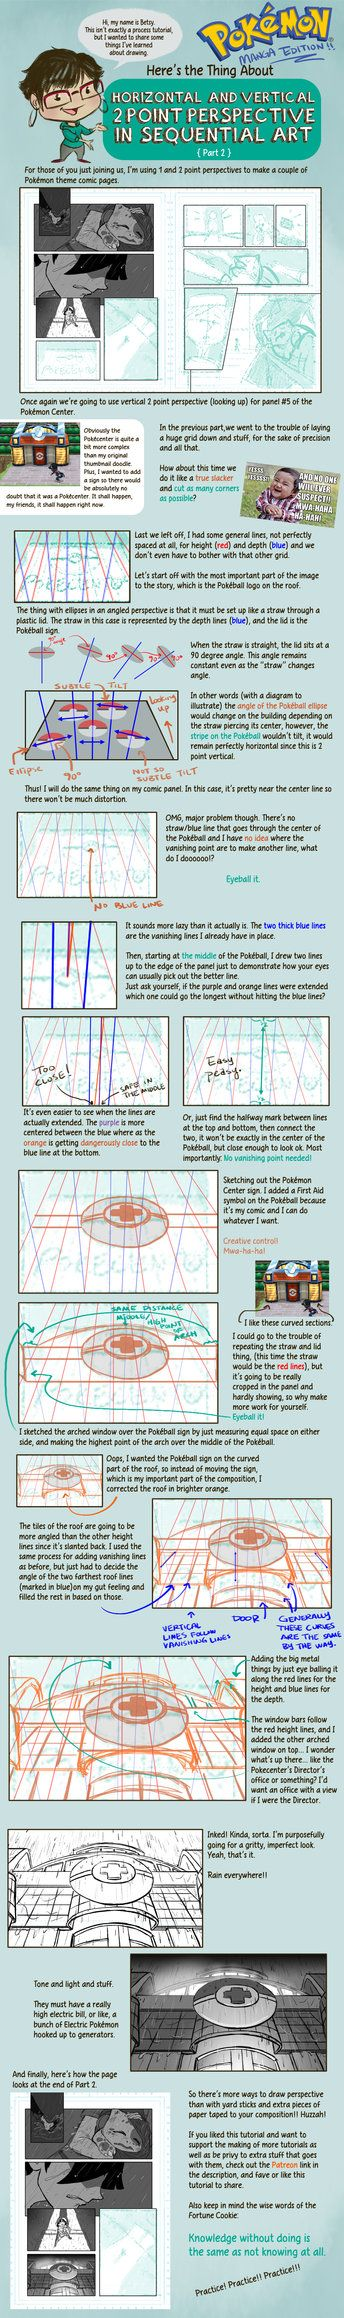 345 best drawing & drafting board images on Pinterest | Technical ...